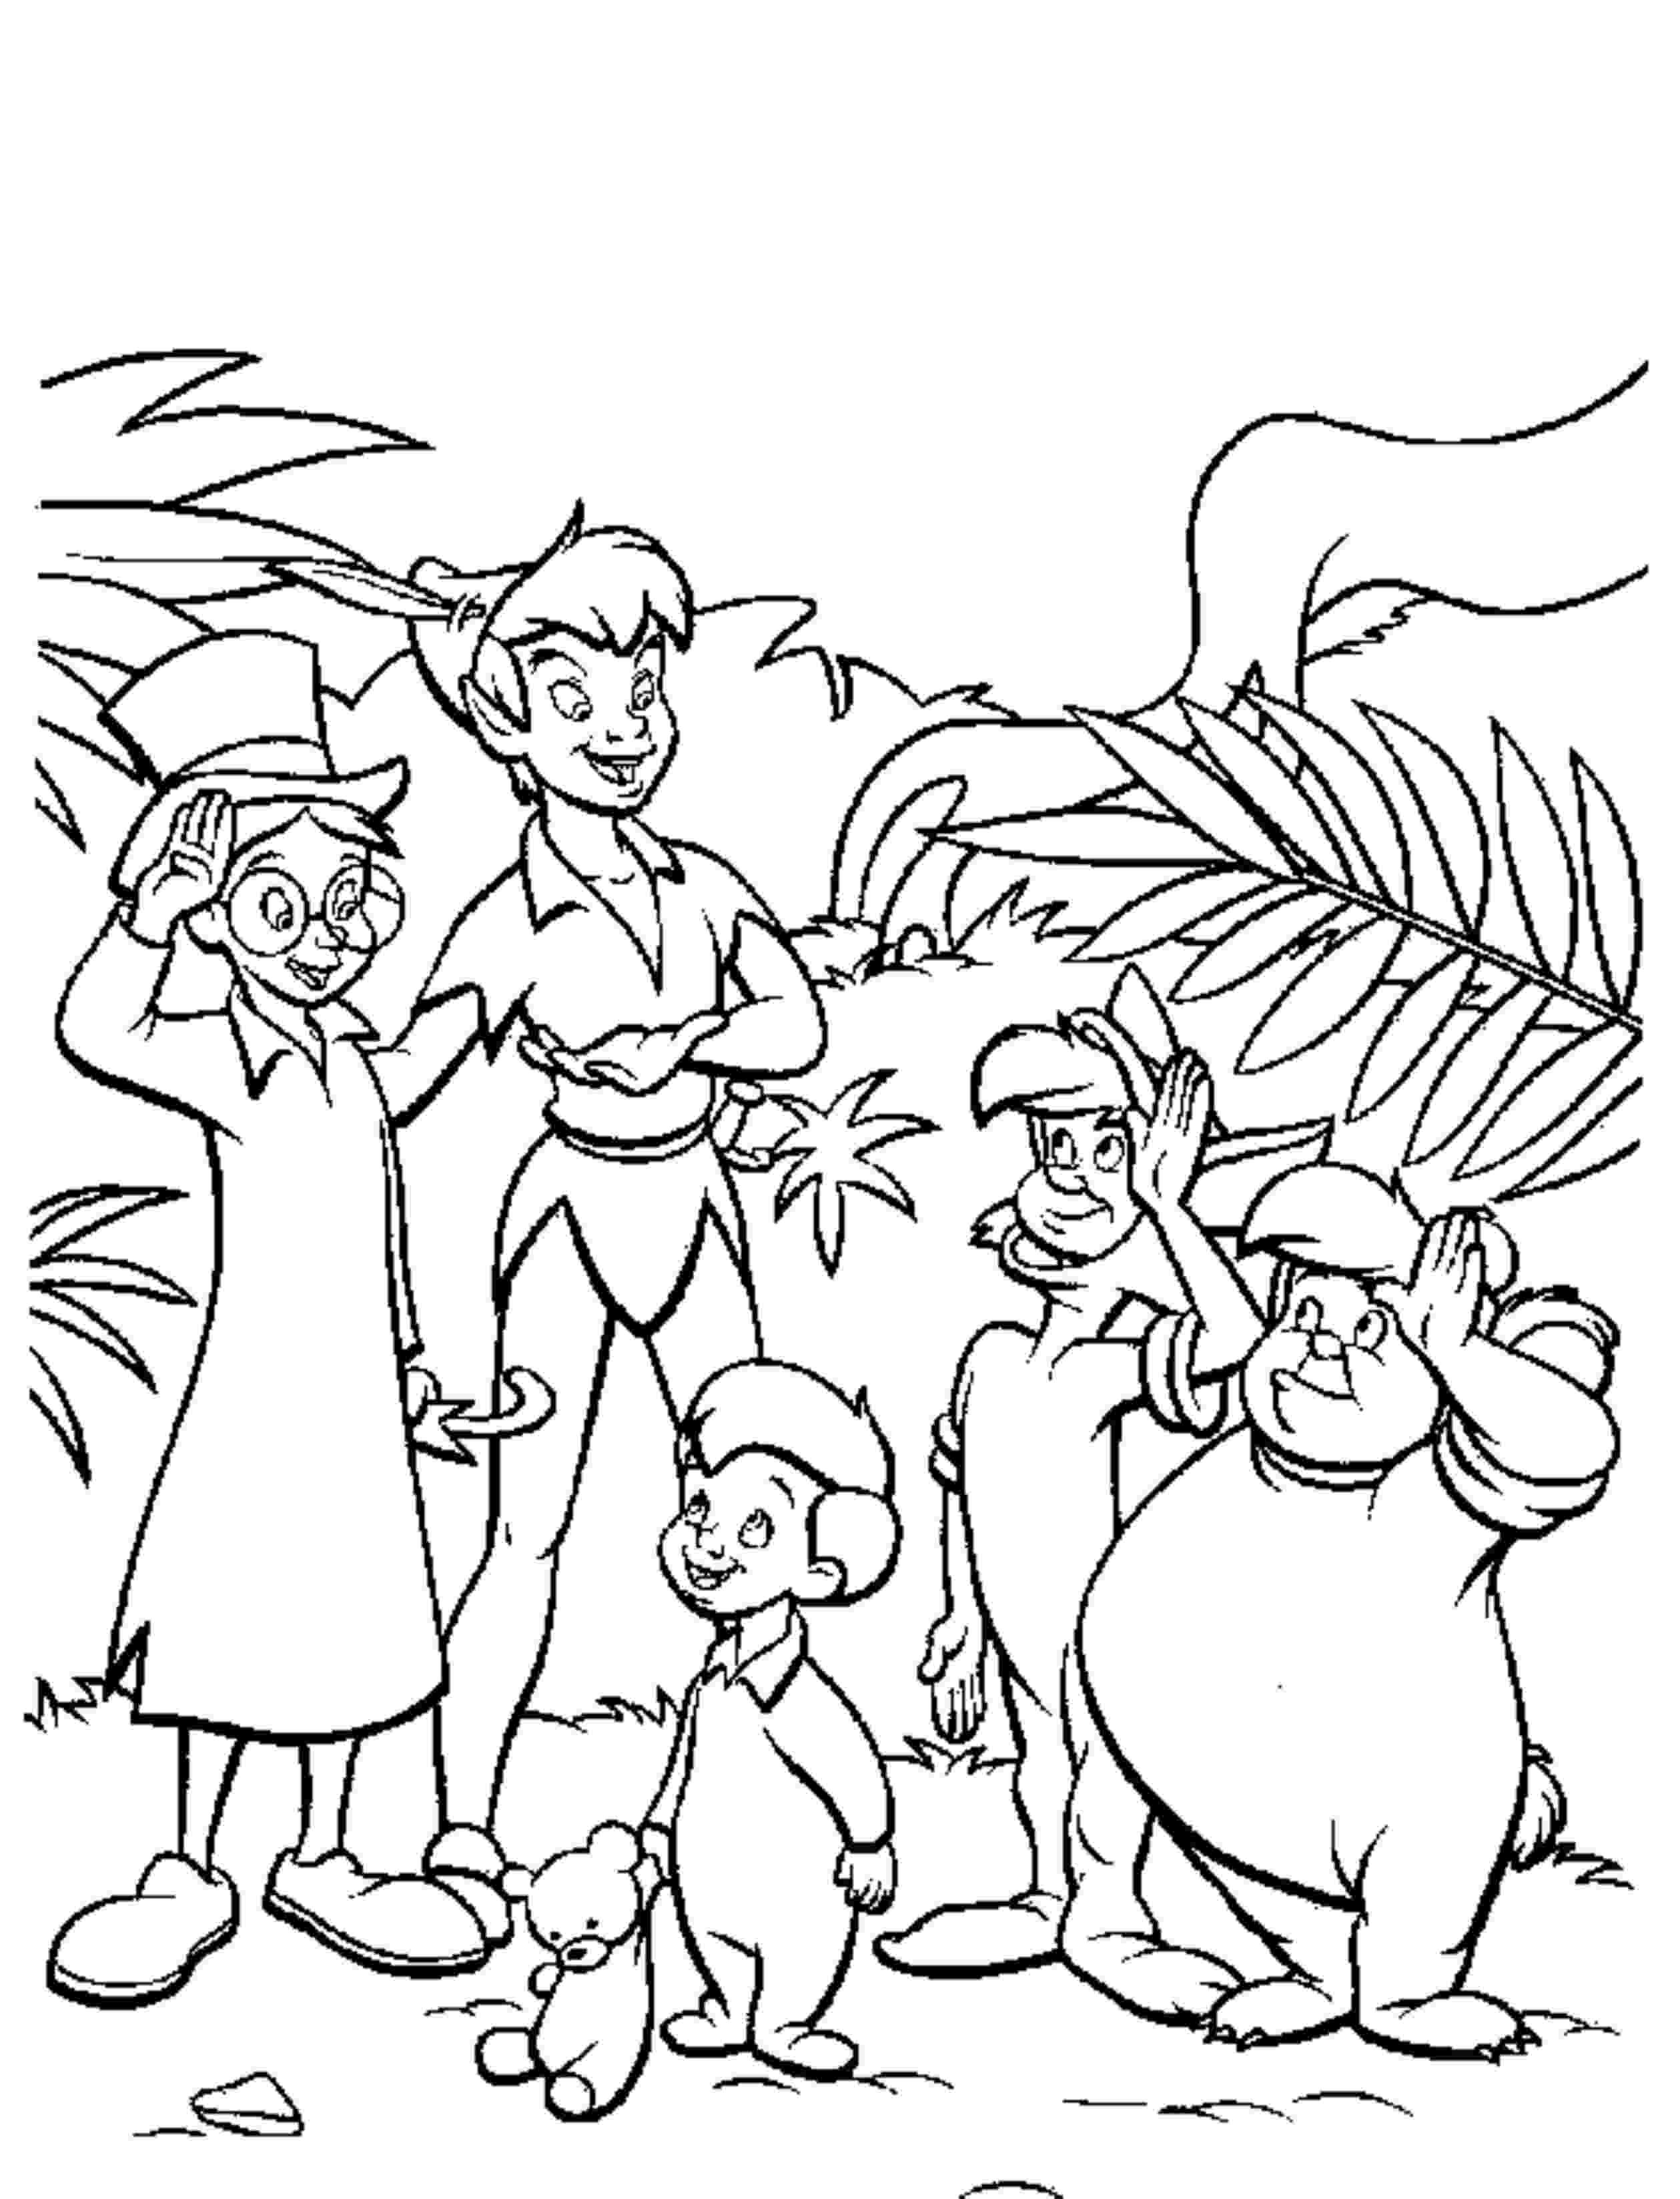 Gallery Of Fun Peter Pan Coloring Pages Downloaded For Free